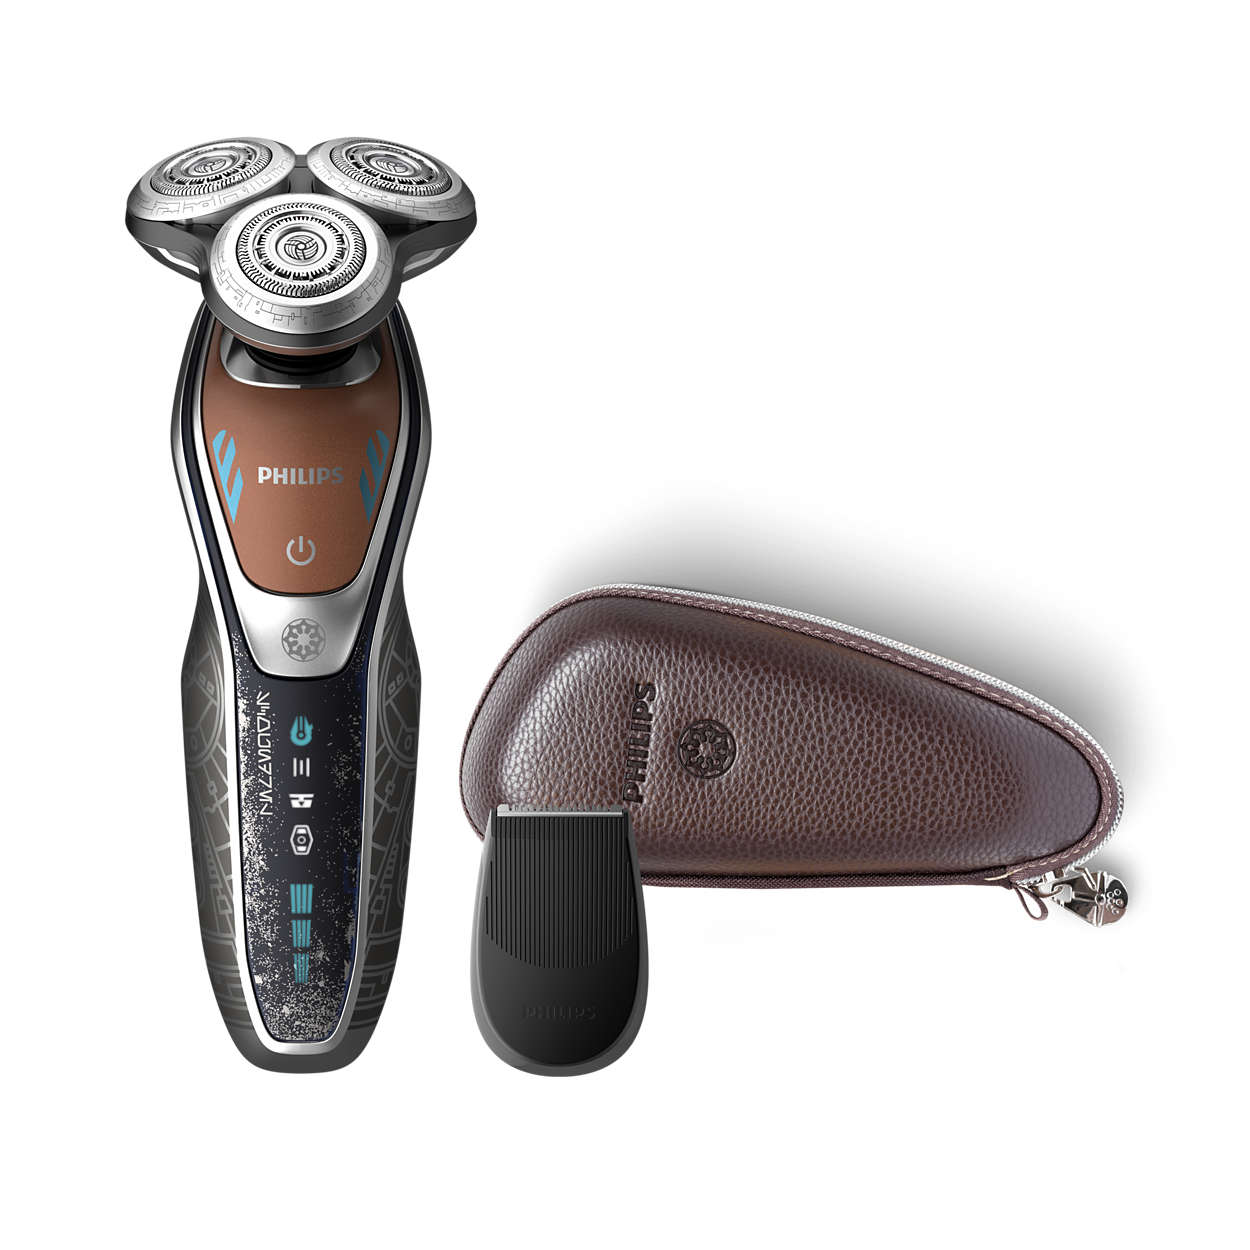 Powerful shave, excellent comfort and closeness